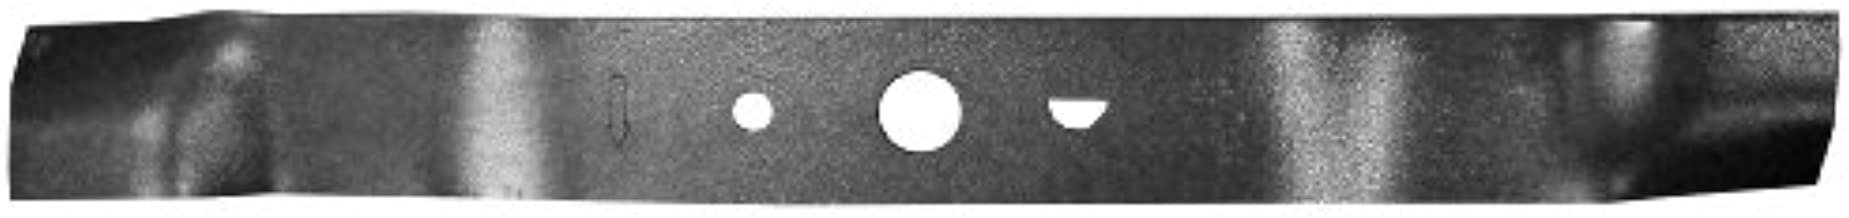 Greenworks 20-Inch Replacement Lawn Mower Blade 29172